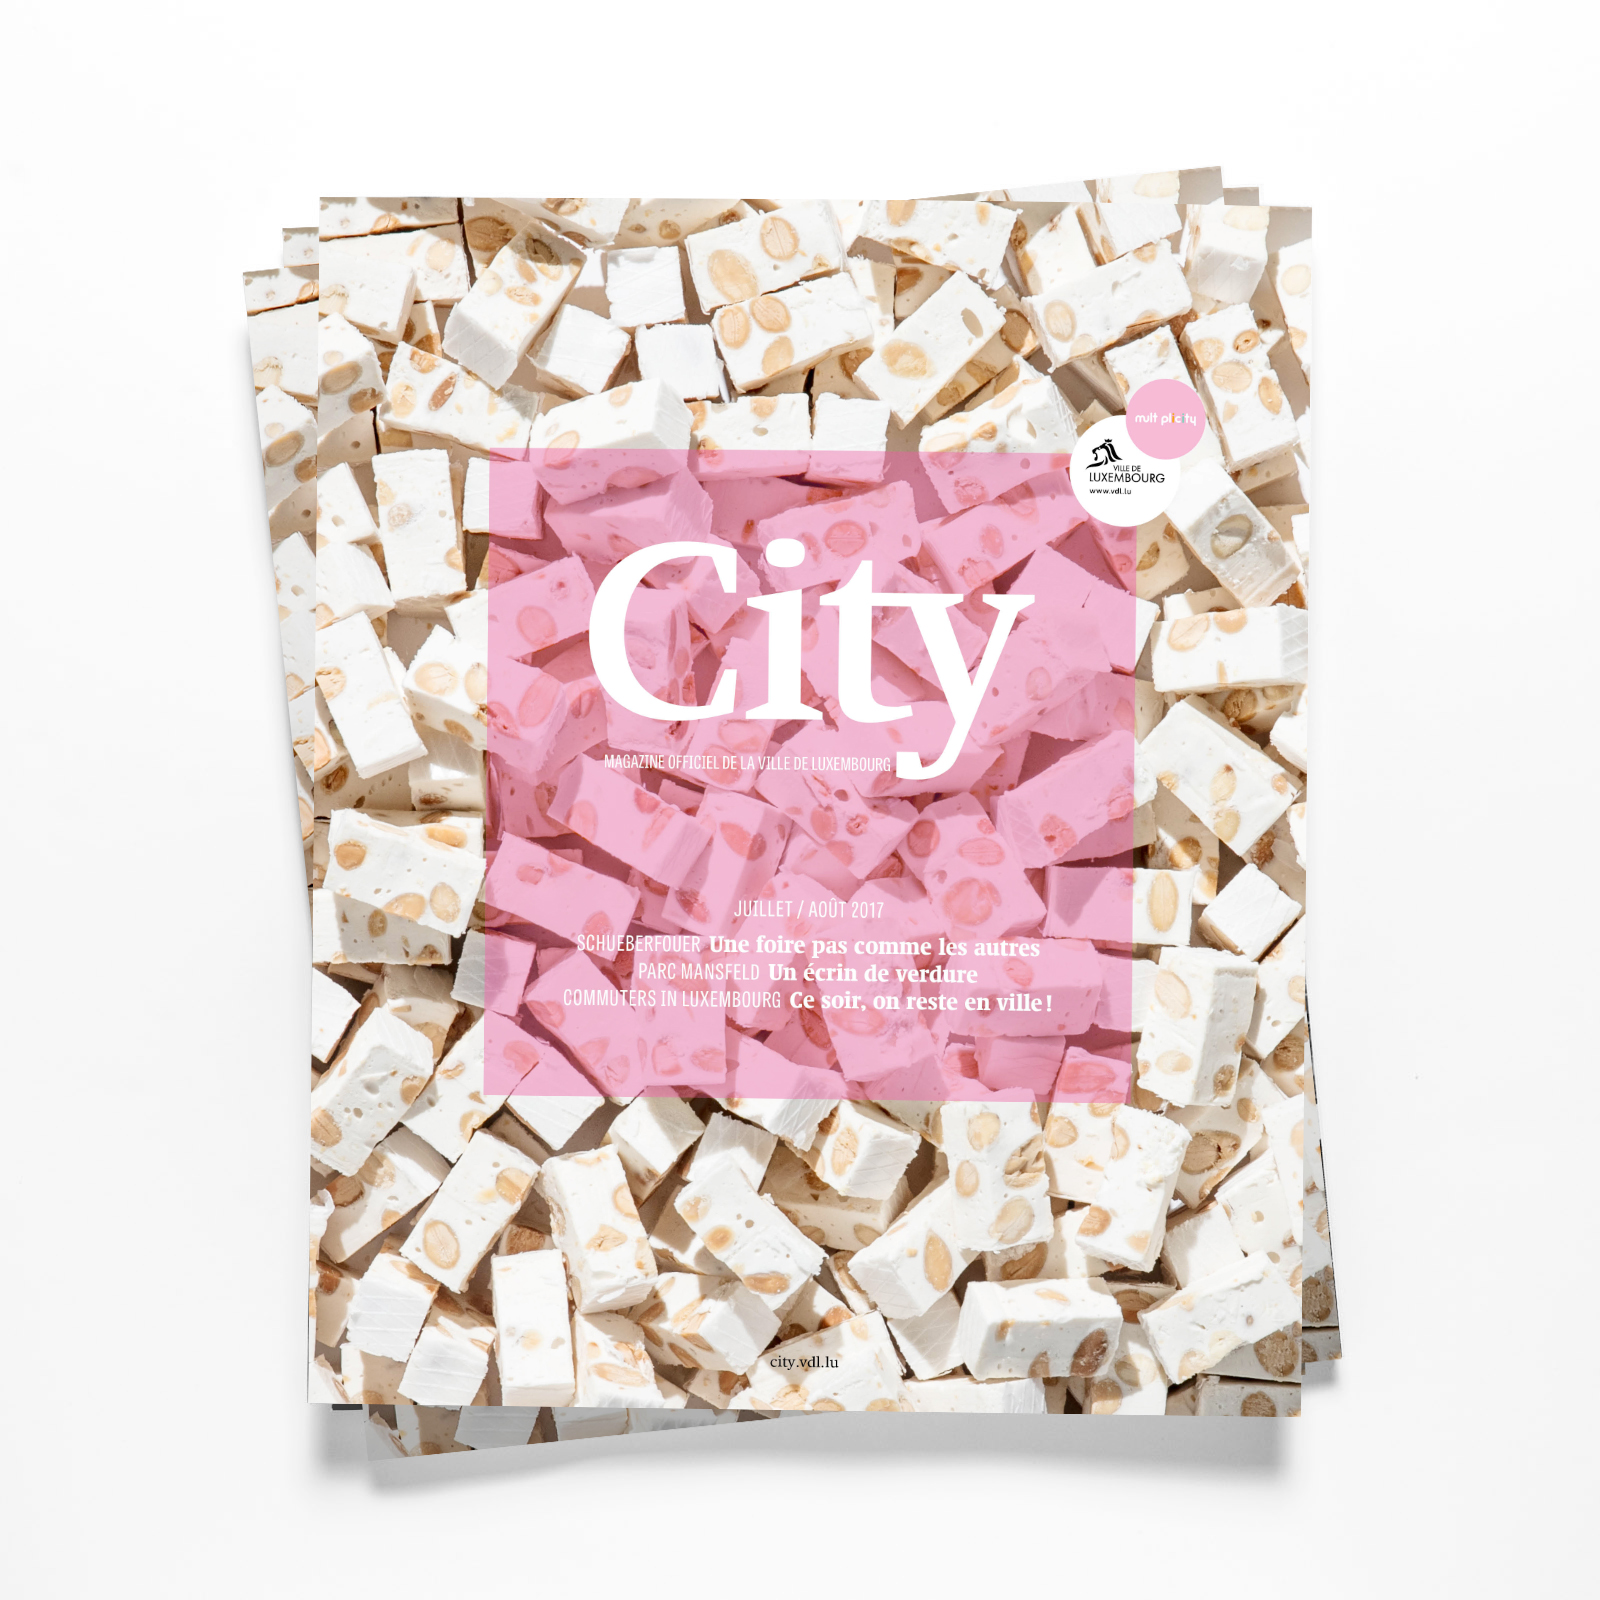 City_cover_07-08_17